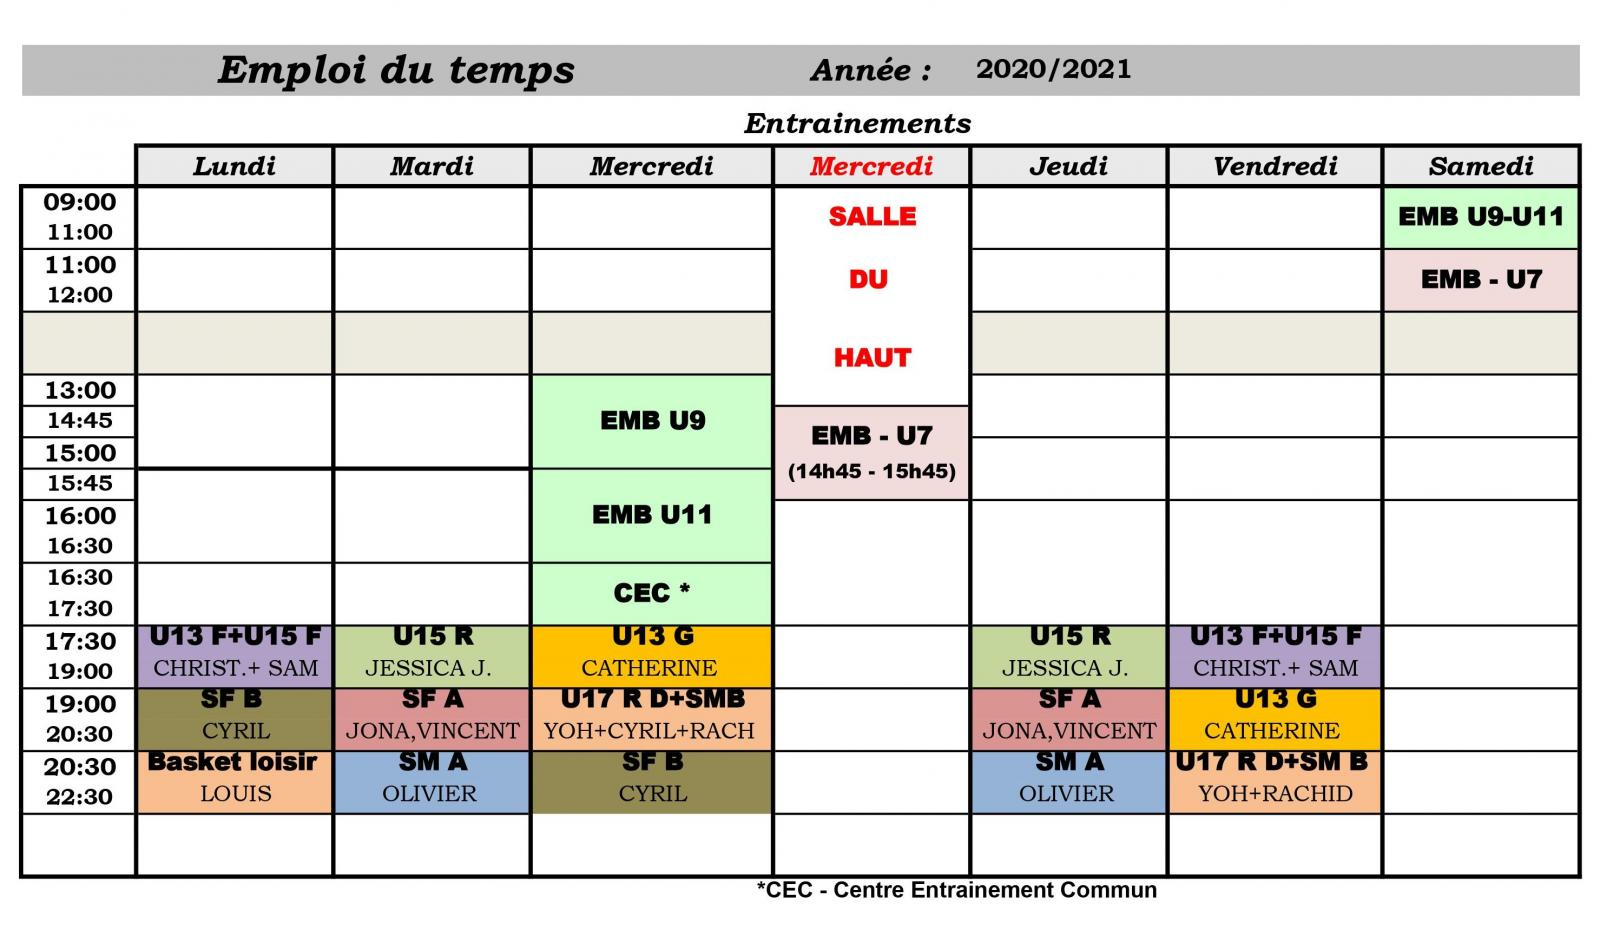 Planning entraînements 2020 - 2021